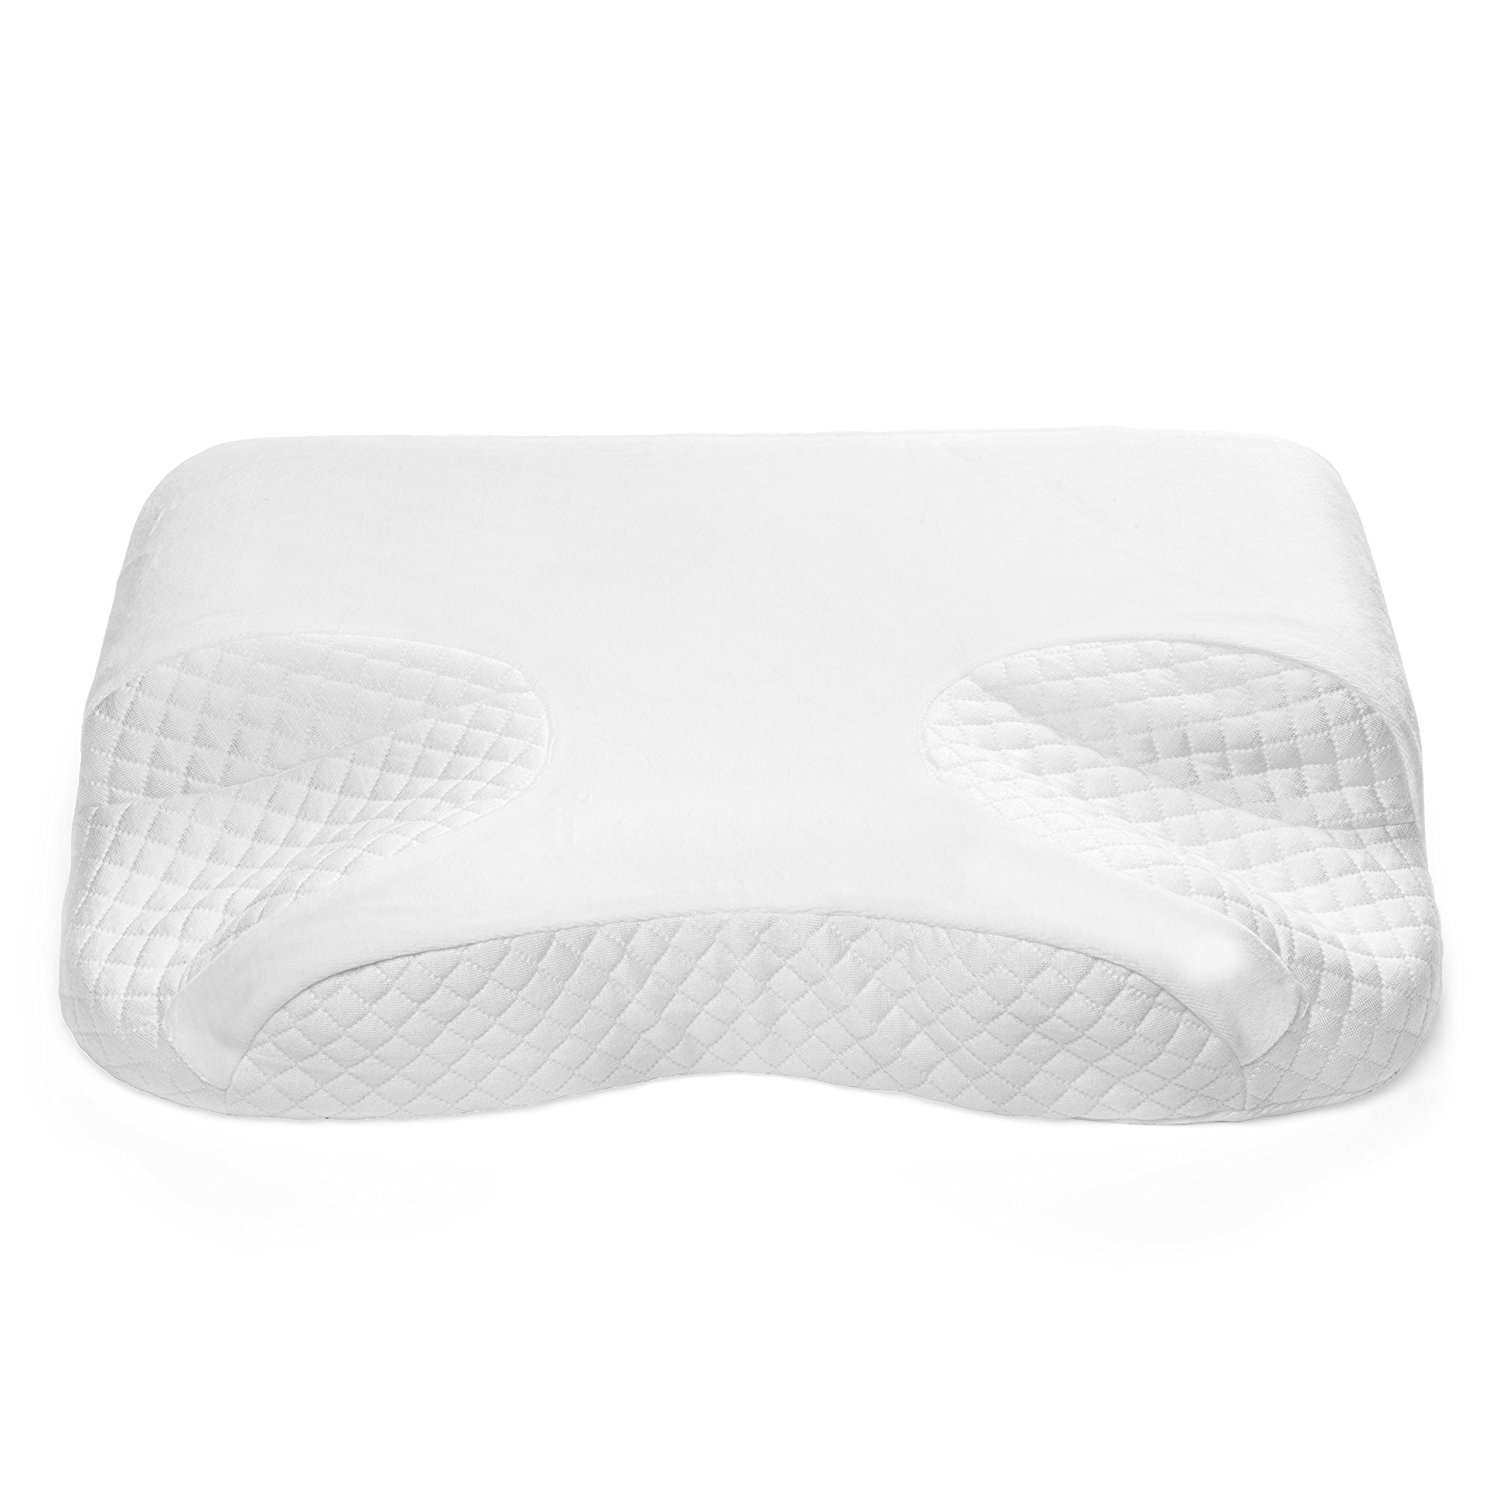 CPAP Memory Foam Pillow By GoodSleep - For BiPAP, APAP & CPAP Mask Users - Nasal Cushion For Side, Back & Stomach Sleepers With Apnea